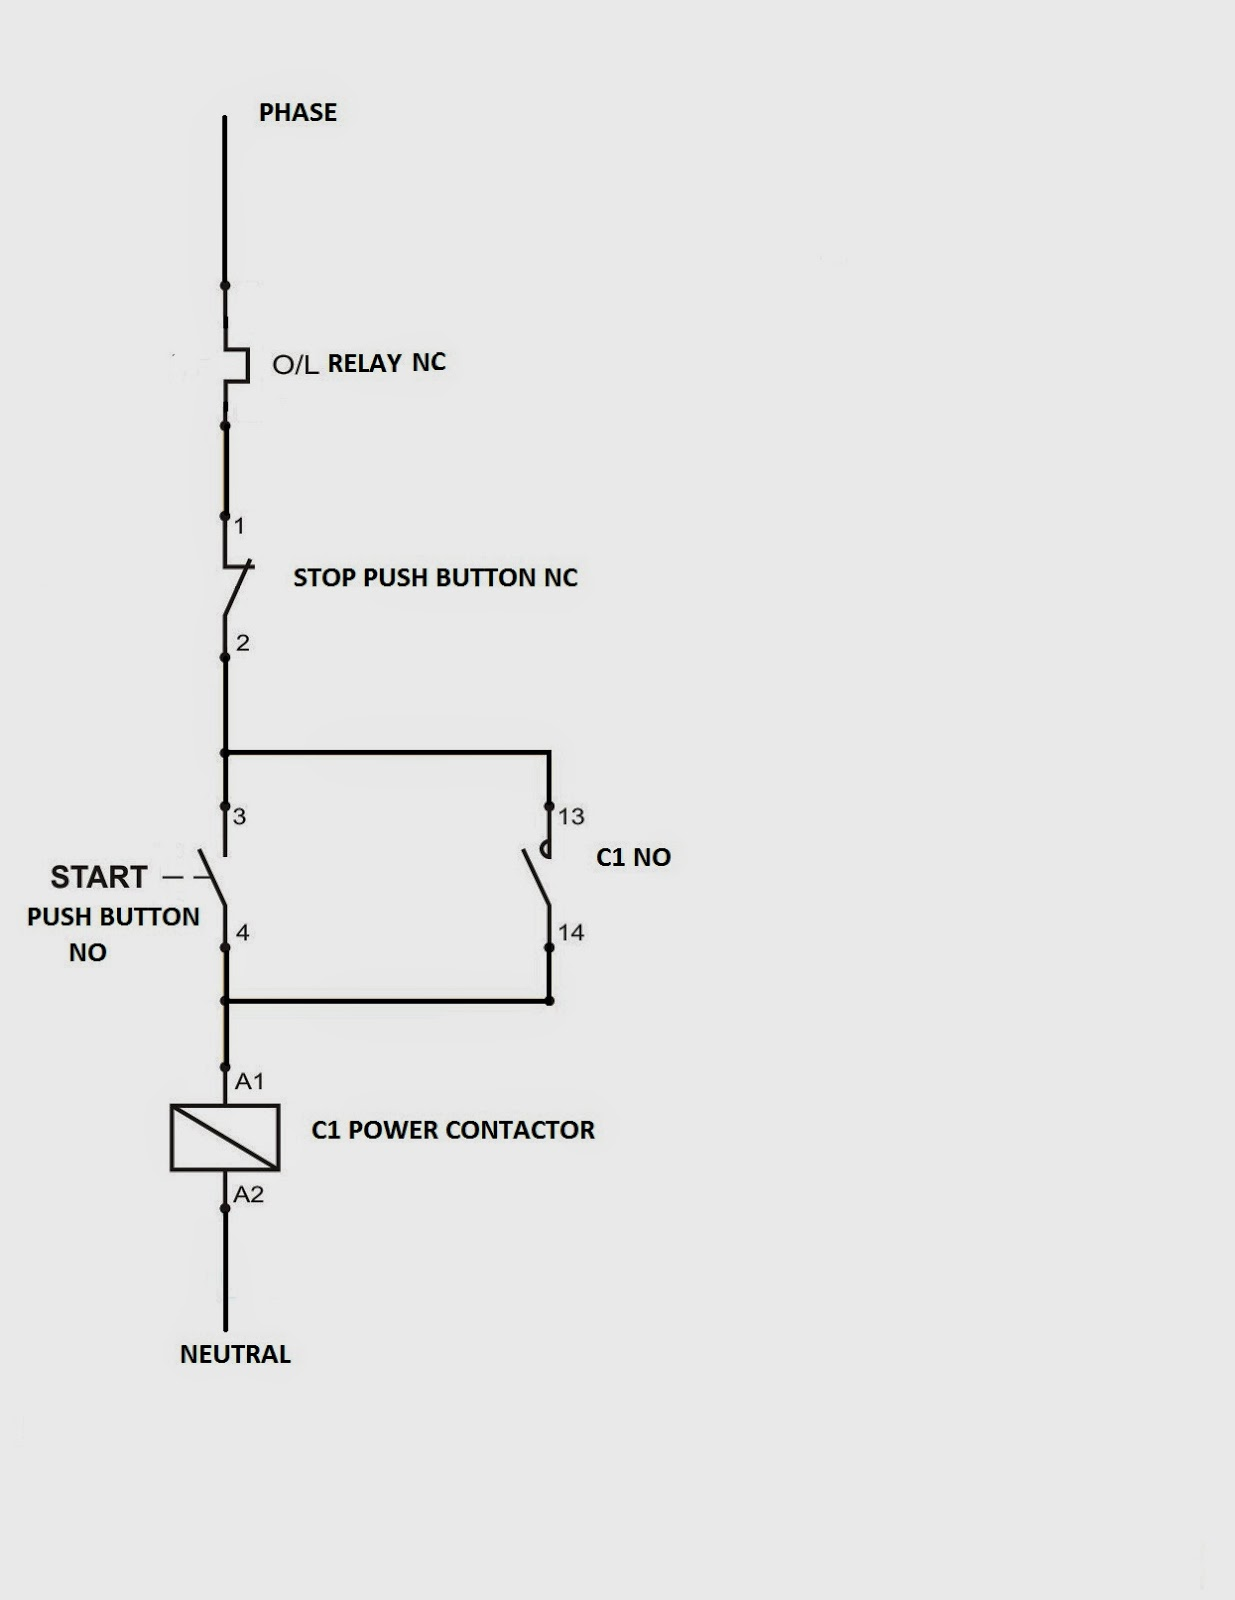 wiring diagram thermal overload relay wiring image electrical standards overload relay working principle and on wiring diagram thermal overload relay